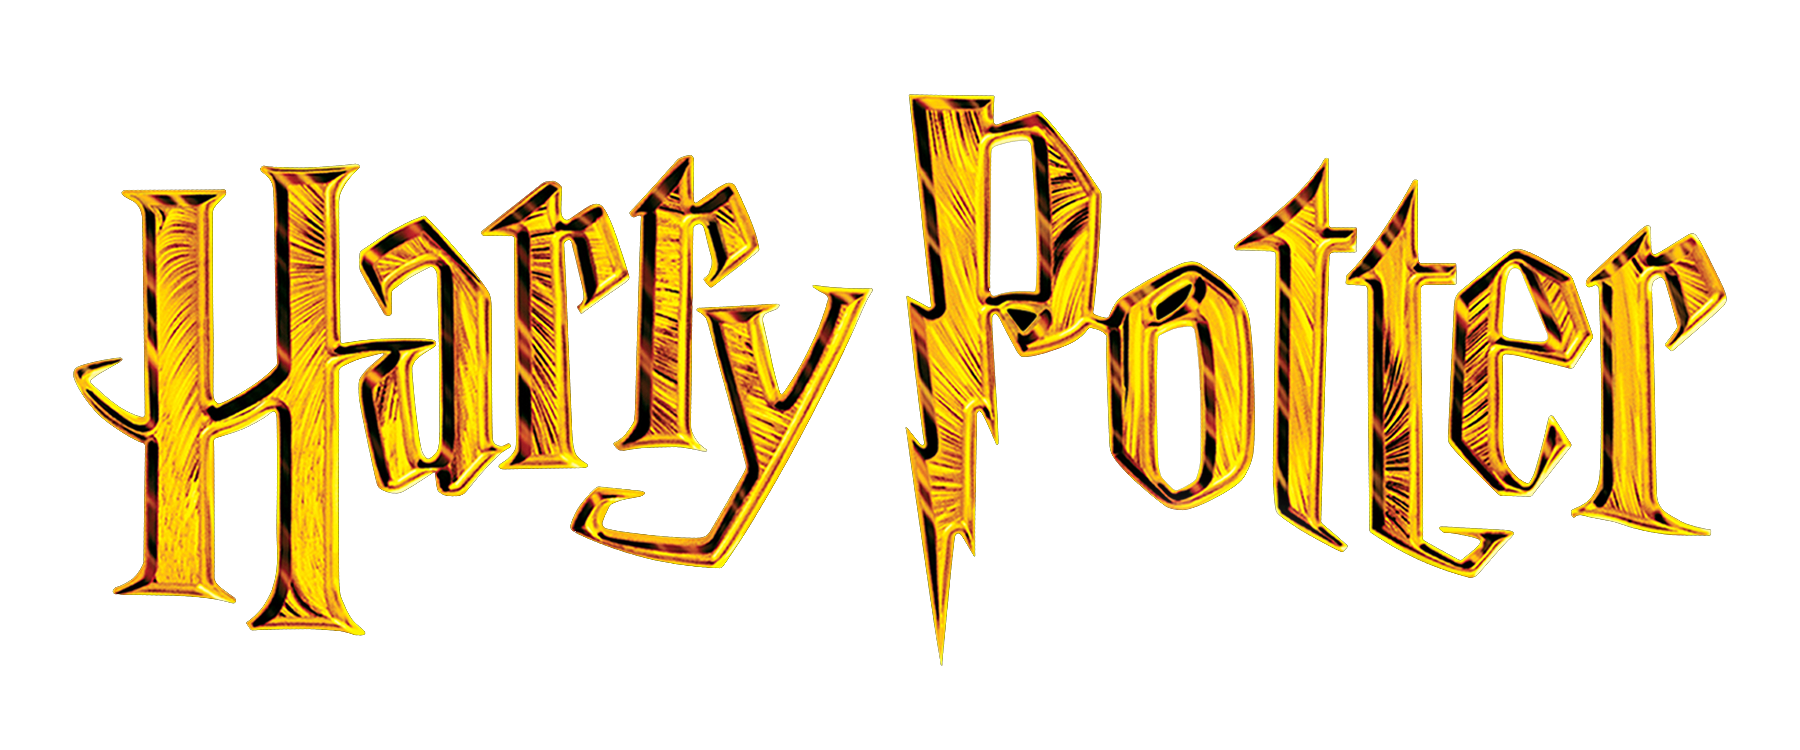 Meaning Harry Potter logo and symbol.